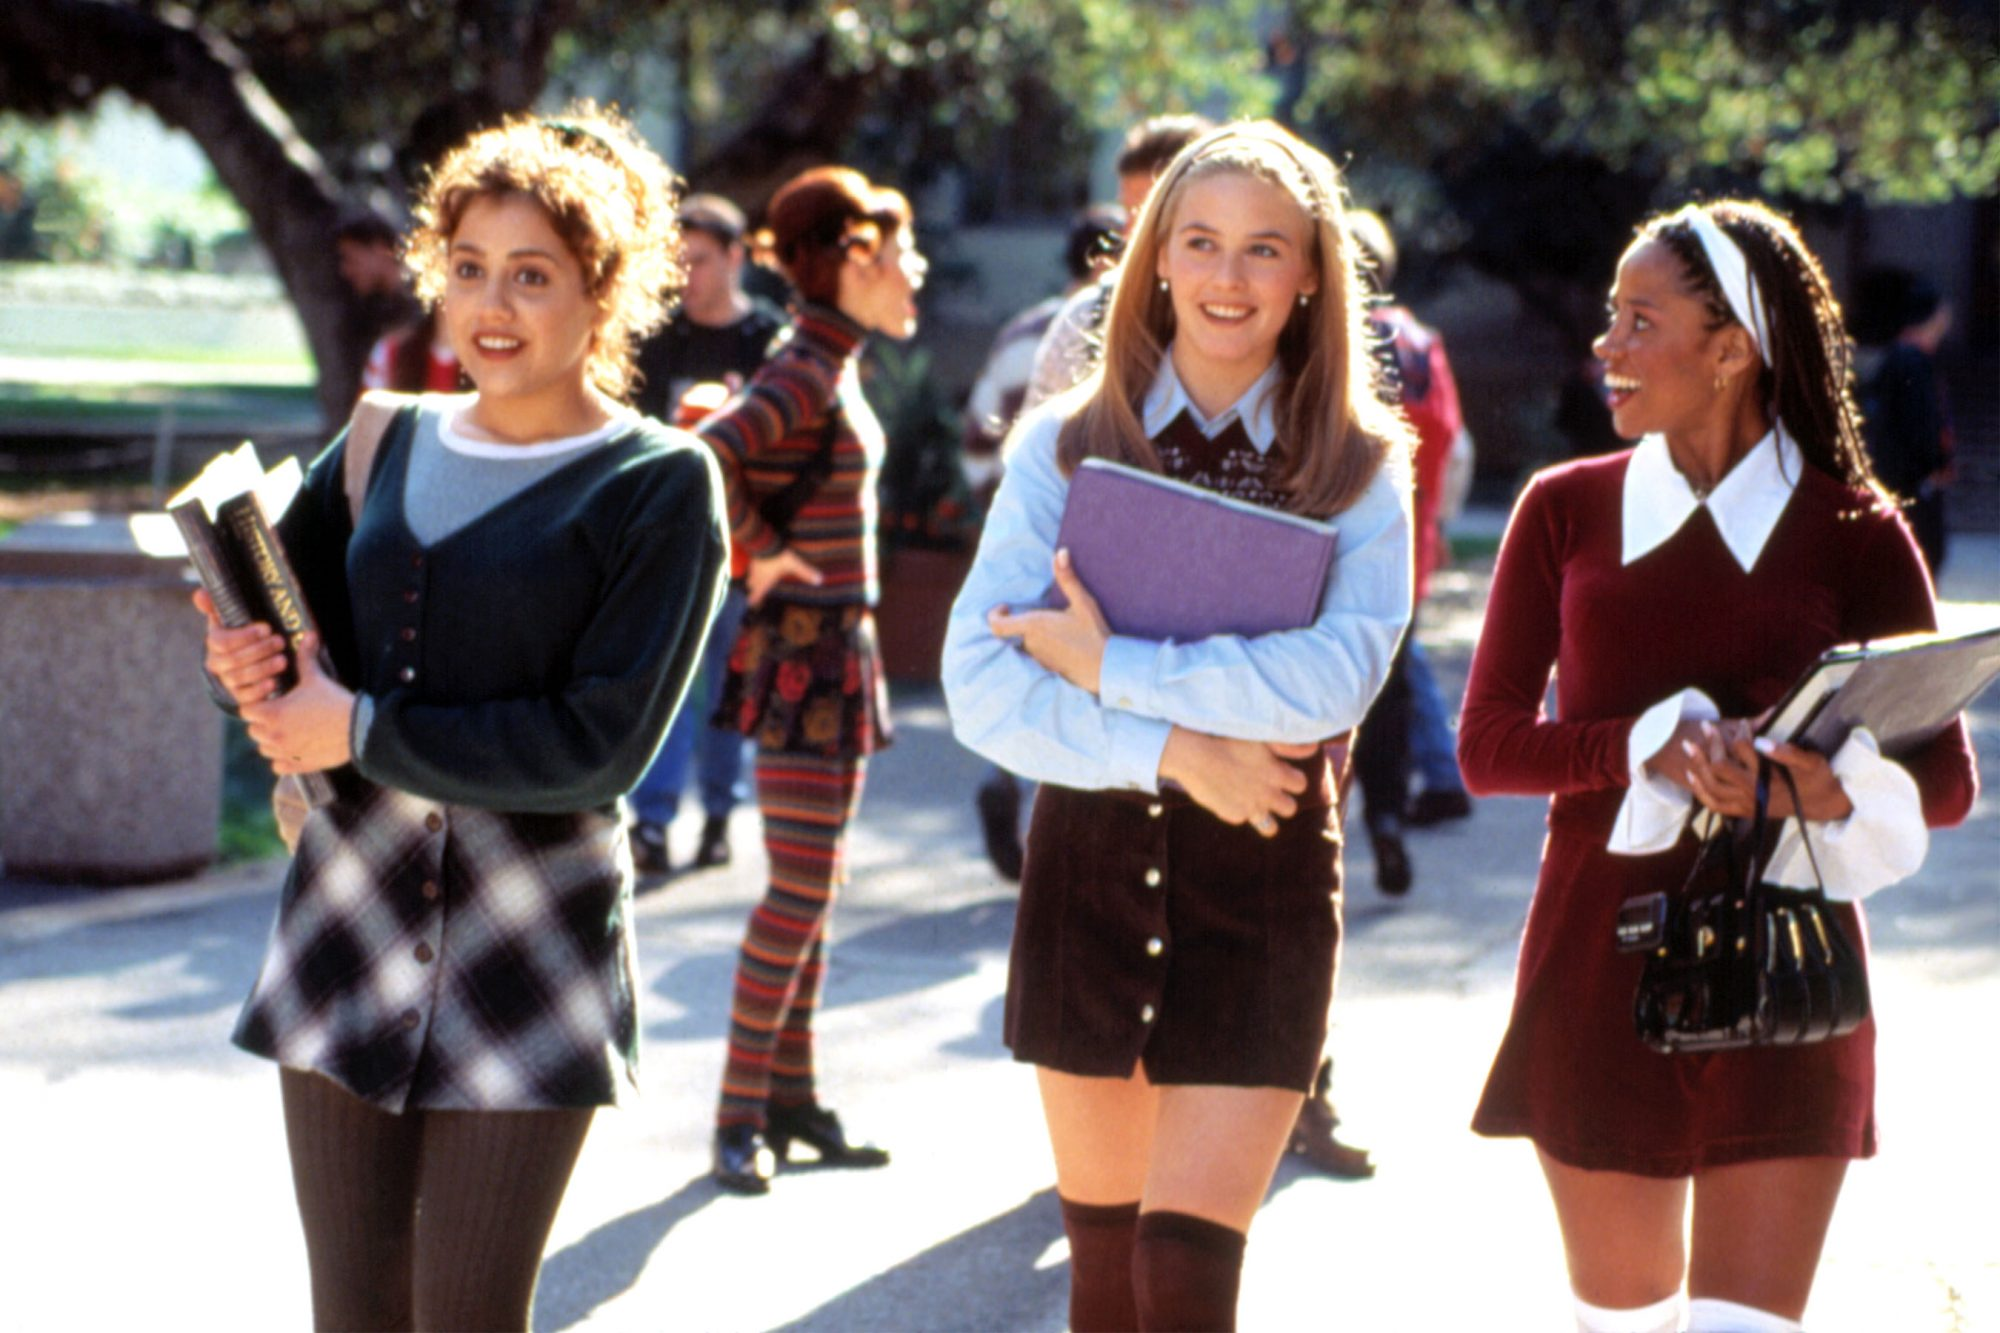 CLUELESS, Brittany Murphy, Alicia Silverstone, Stacey Dash, 1995